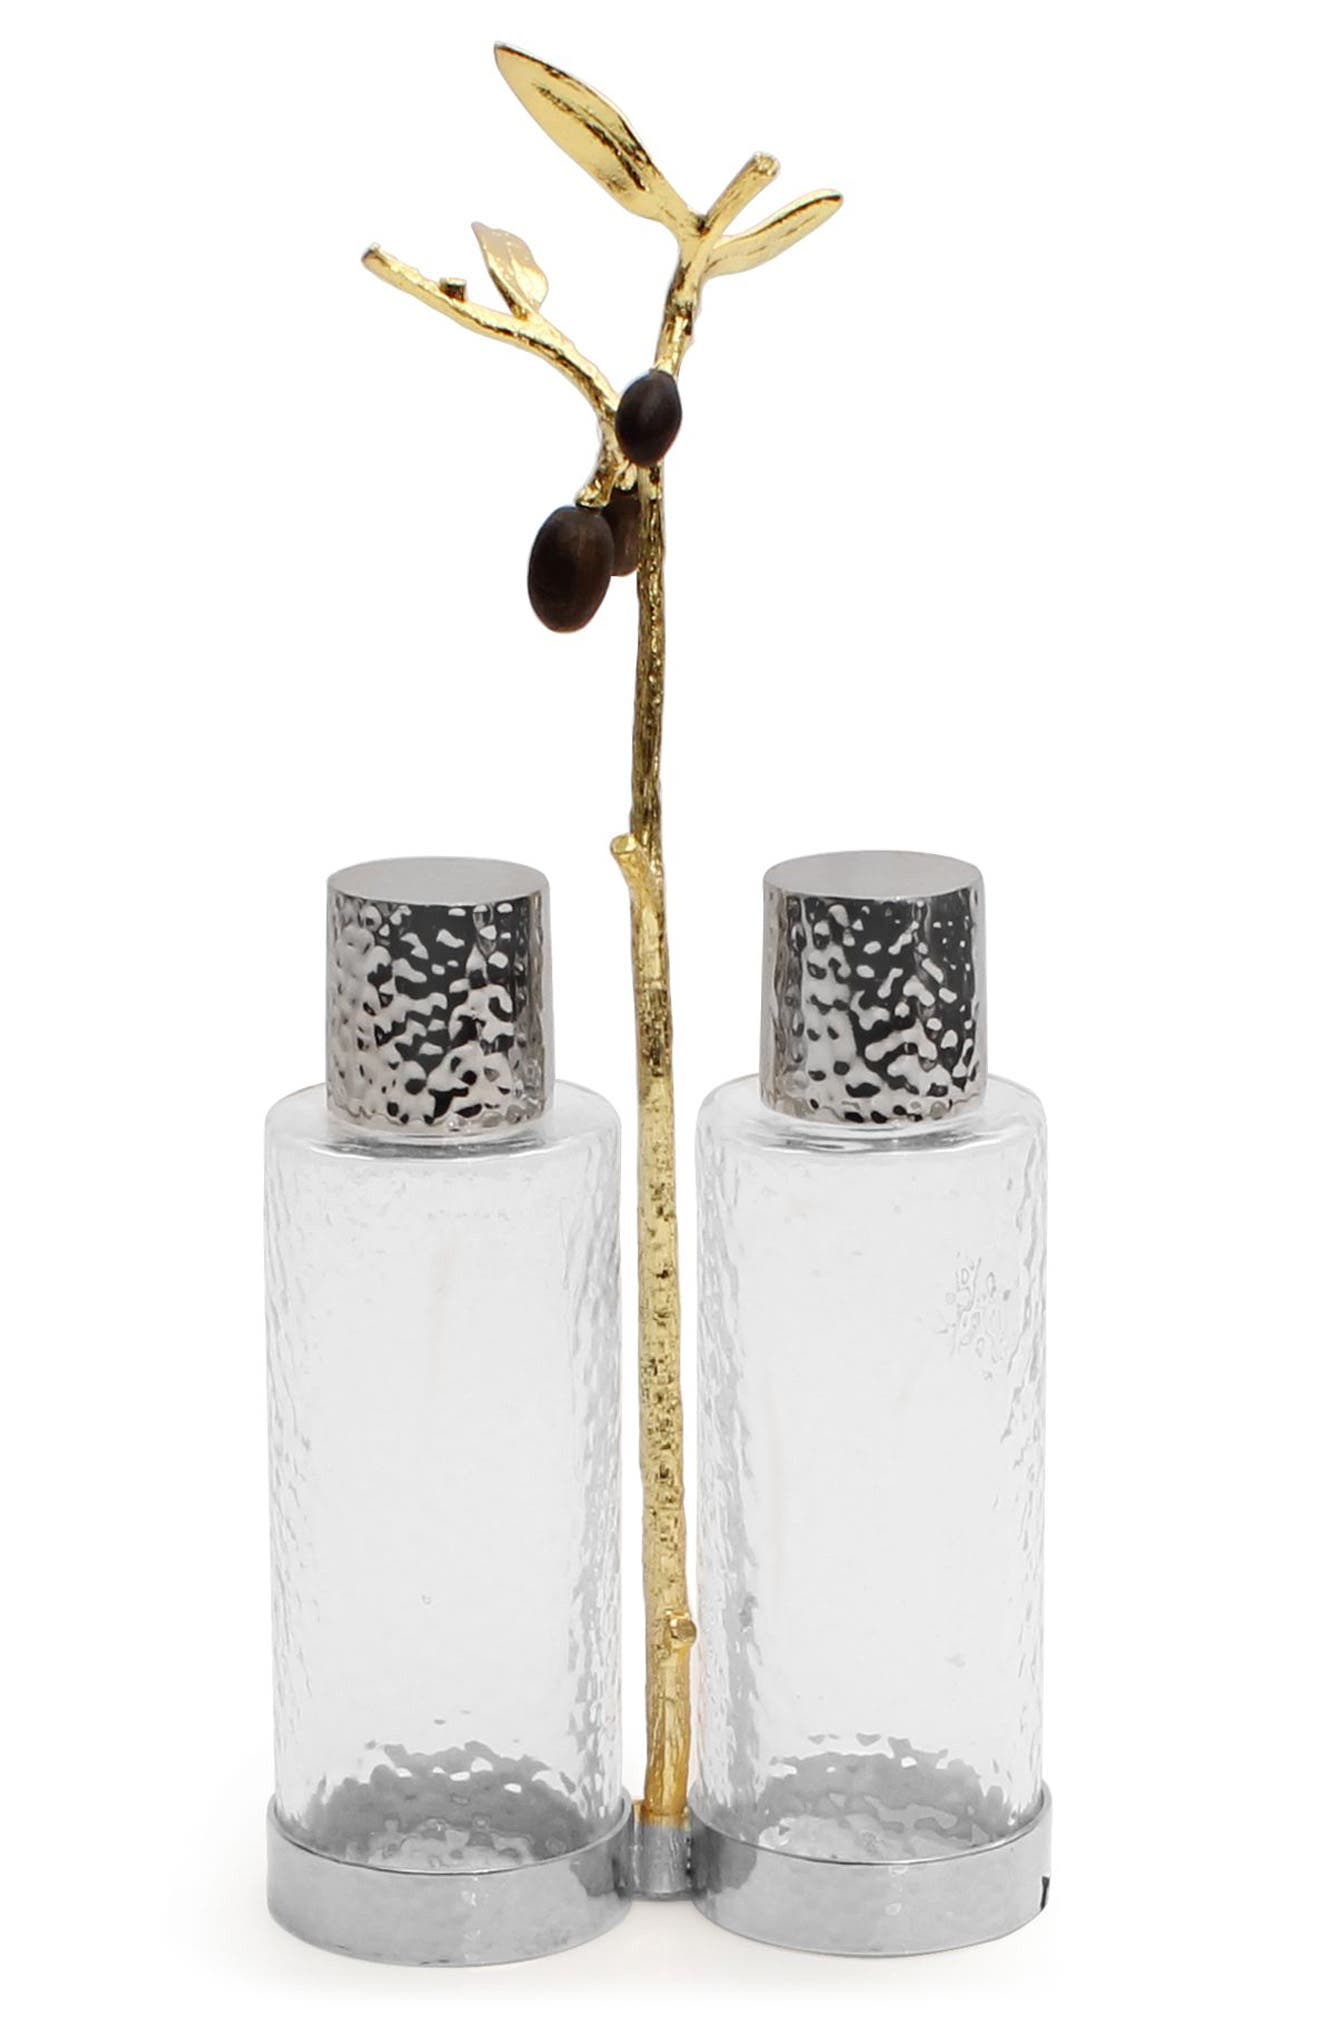 Olive Branch Cruet Caddy,                         Main,                         color, Silver/ Gold/ Black